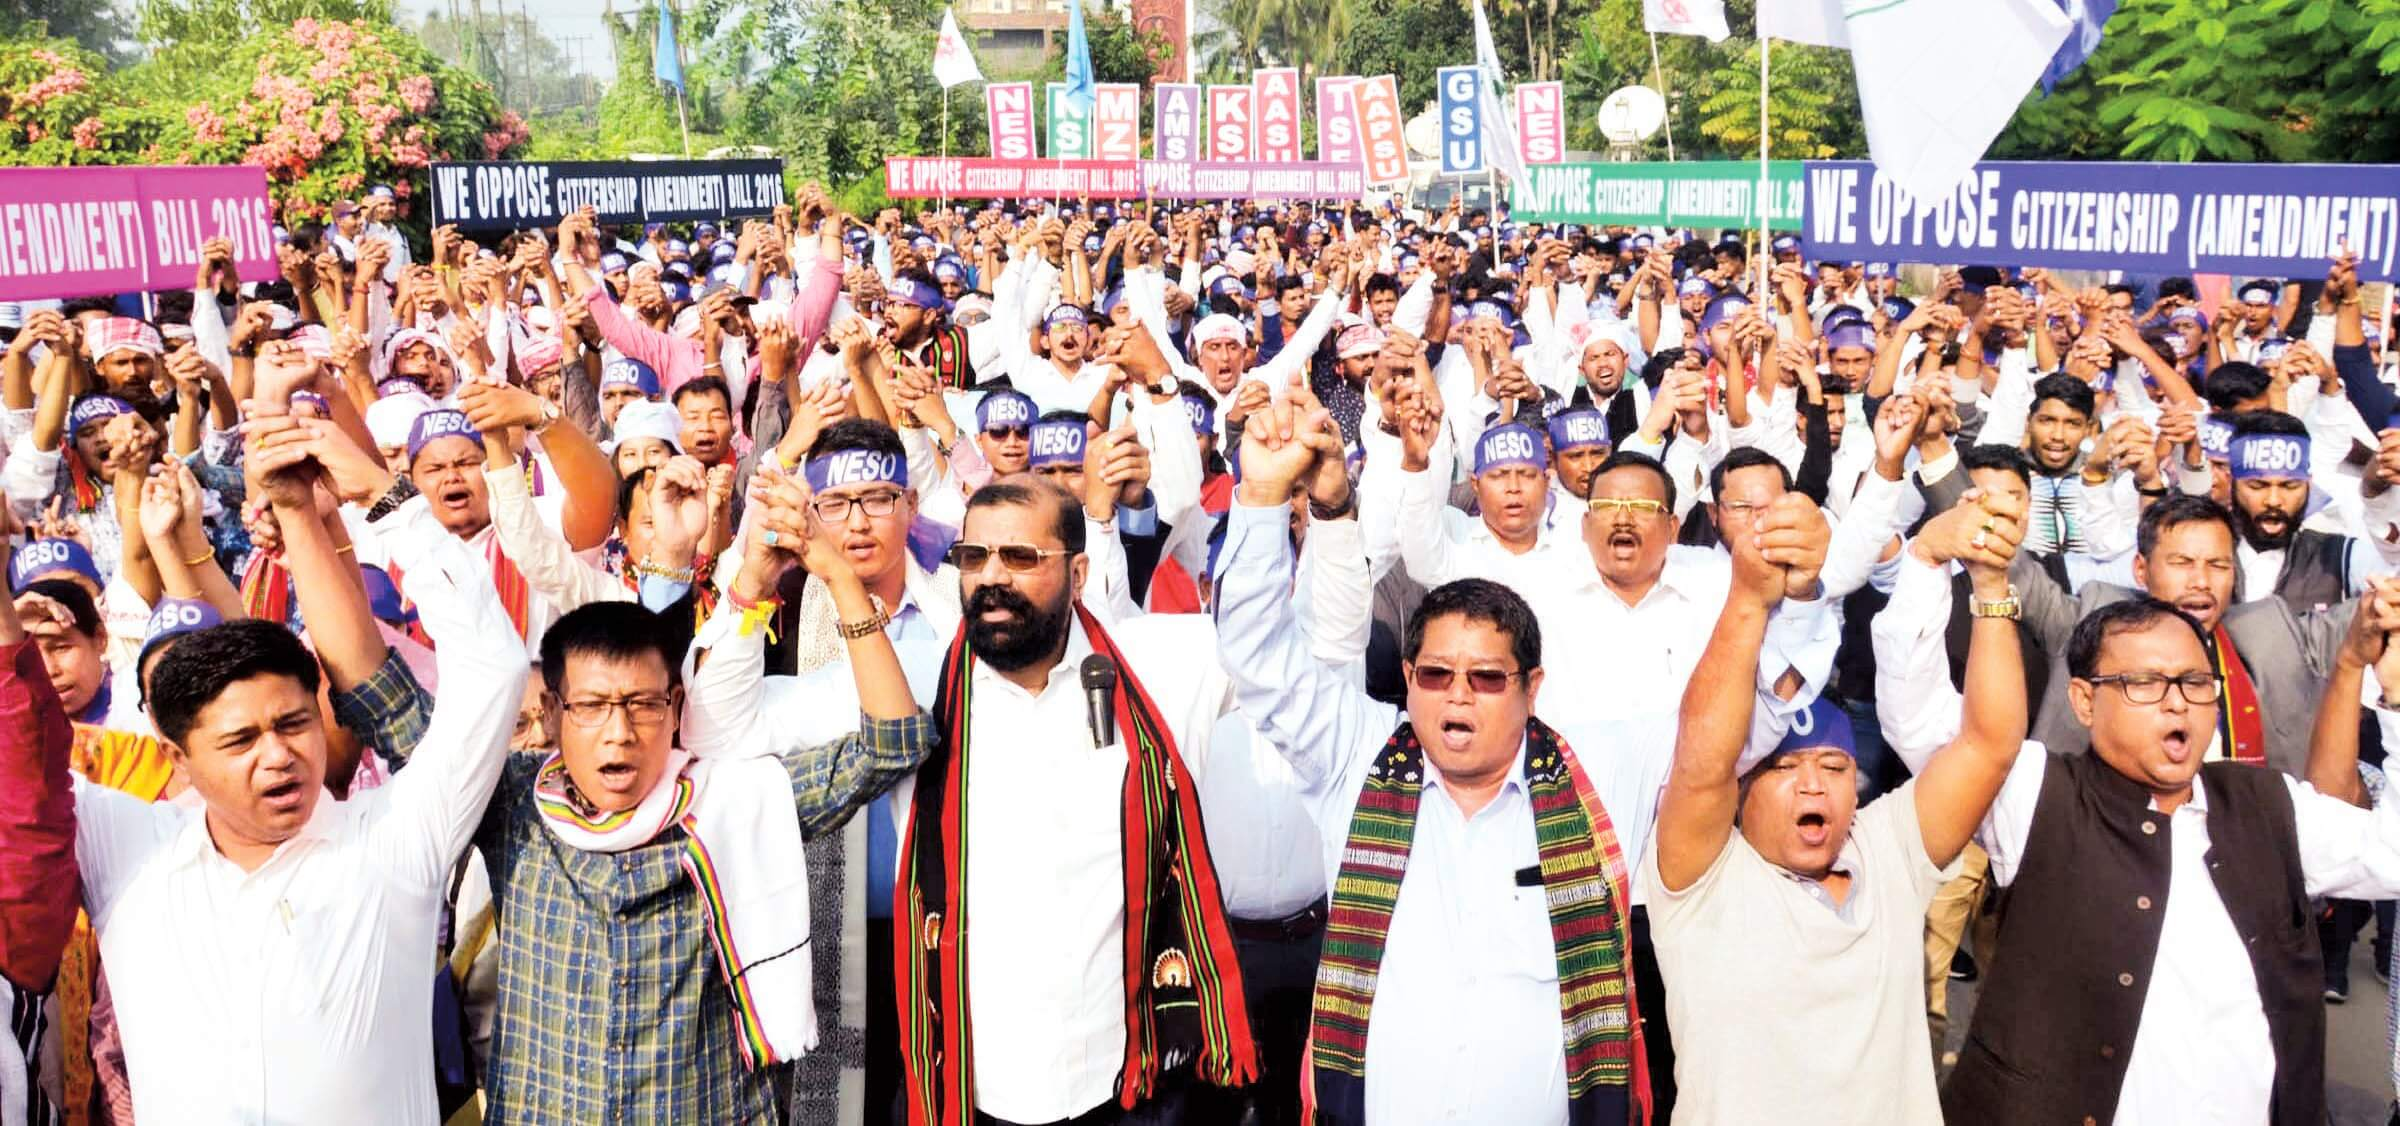 Northeast States to fight unitedly against Citizenship (Amendment) Bill: North East Students' Organization (NESO)